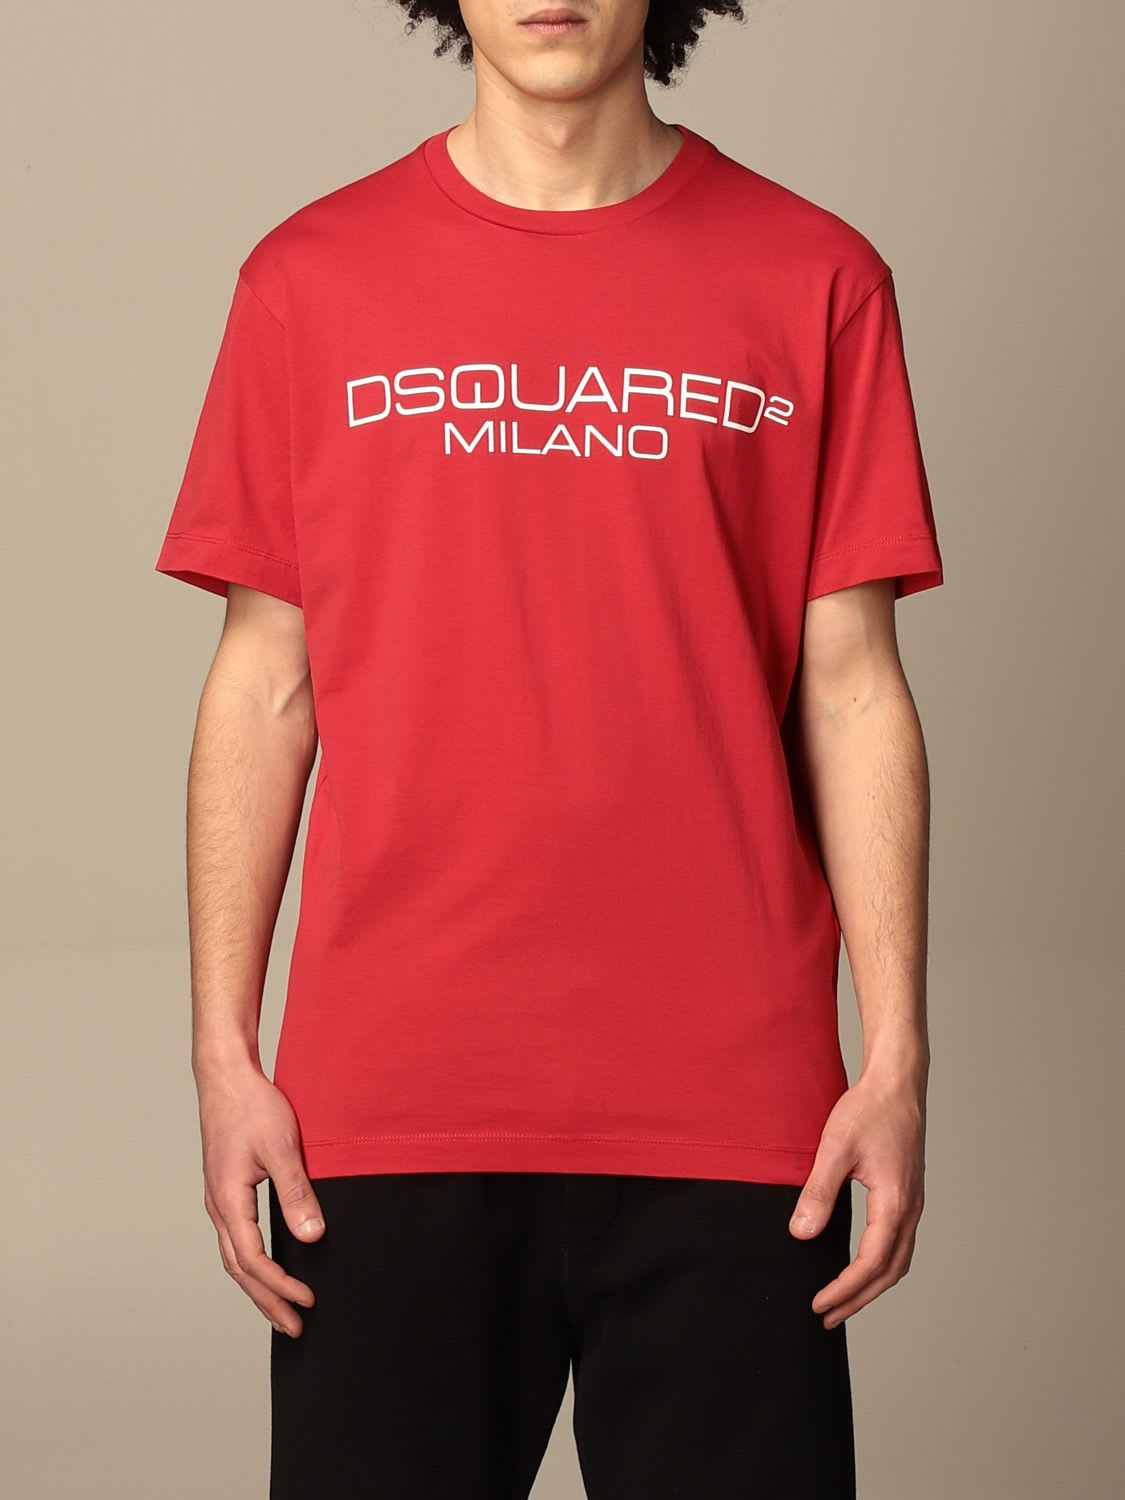 Dsquared2 Clothing COTTON T-SHIRT WITH LOGO